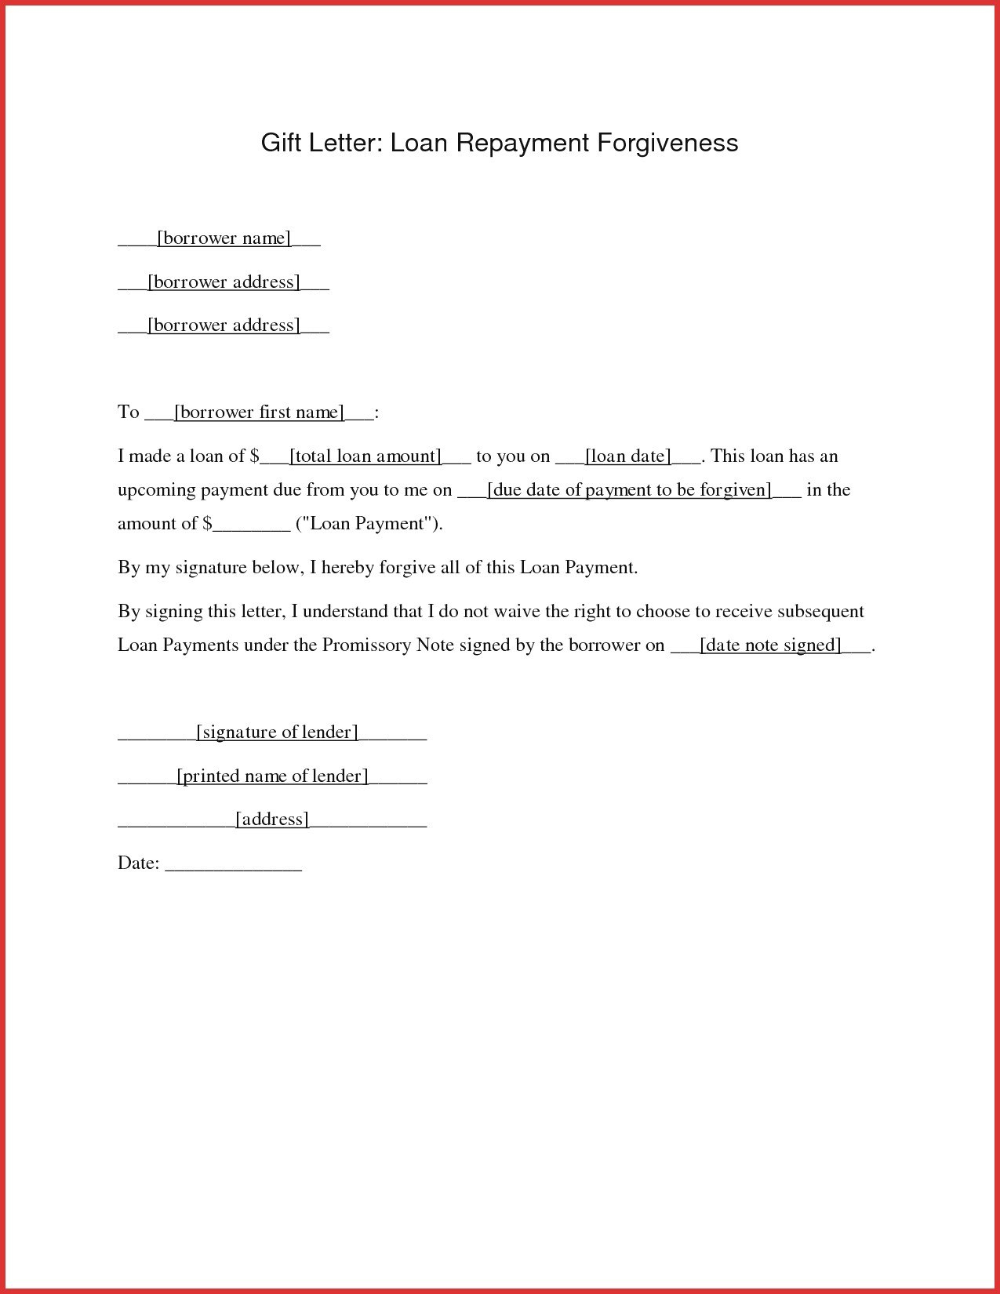 Auto Loan Payoff Letter Template Samples Letter Cover Templates Inside Payoff Letter Template 10 Professional Templ In 2020 Letter Templates Payoff Letter Lettering